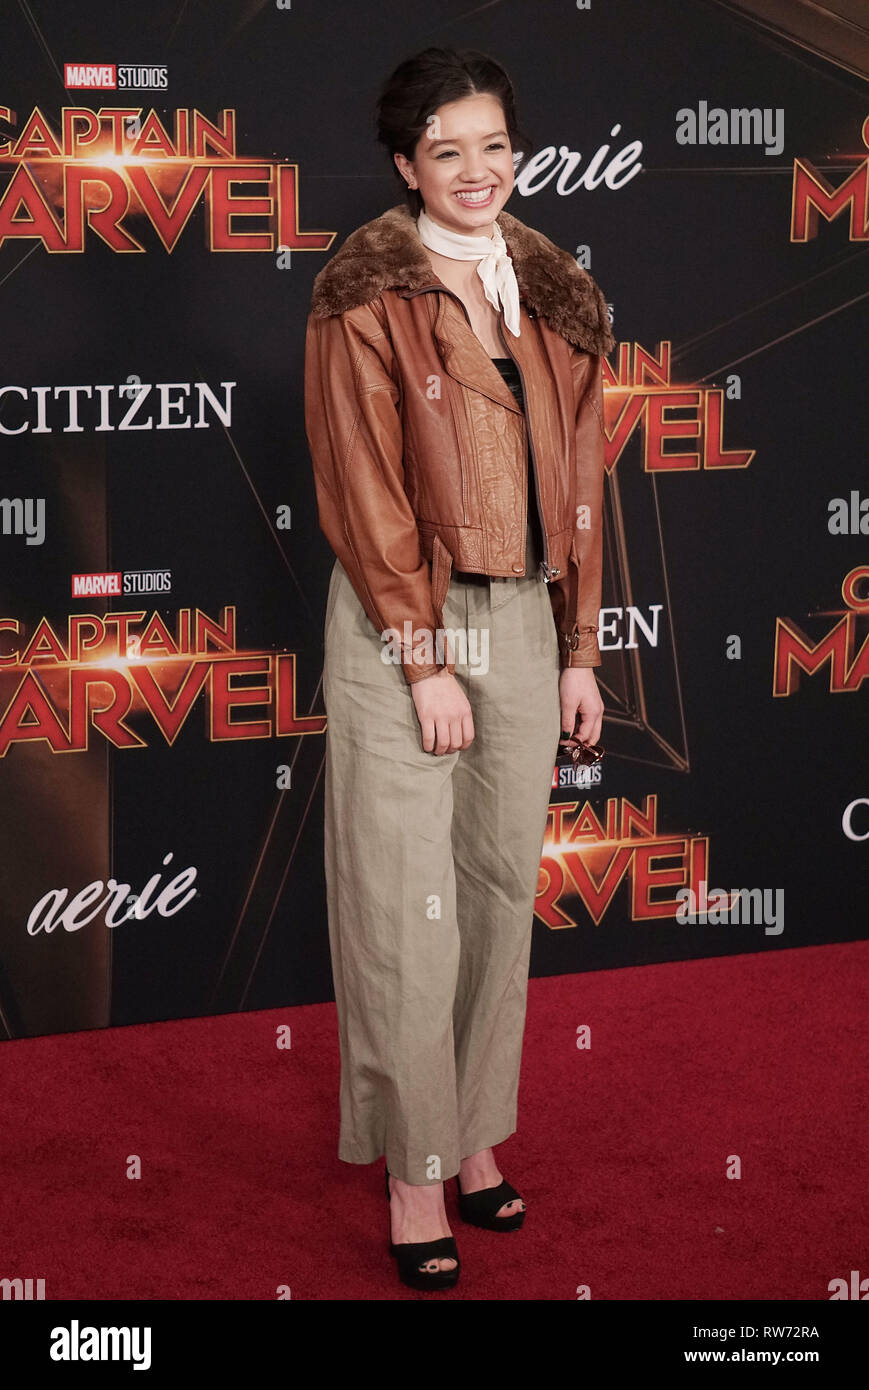 Los Angeles, USA. 04th Mar, 2019. Peyton Elizabeth Lee 074 attends the Marvel Studios 'Captain Marvel' premiere on March 04, 2019 in Hollywood, California. Credit: Tsuni/USA/Alamy Live News - Stock Image